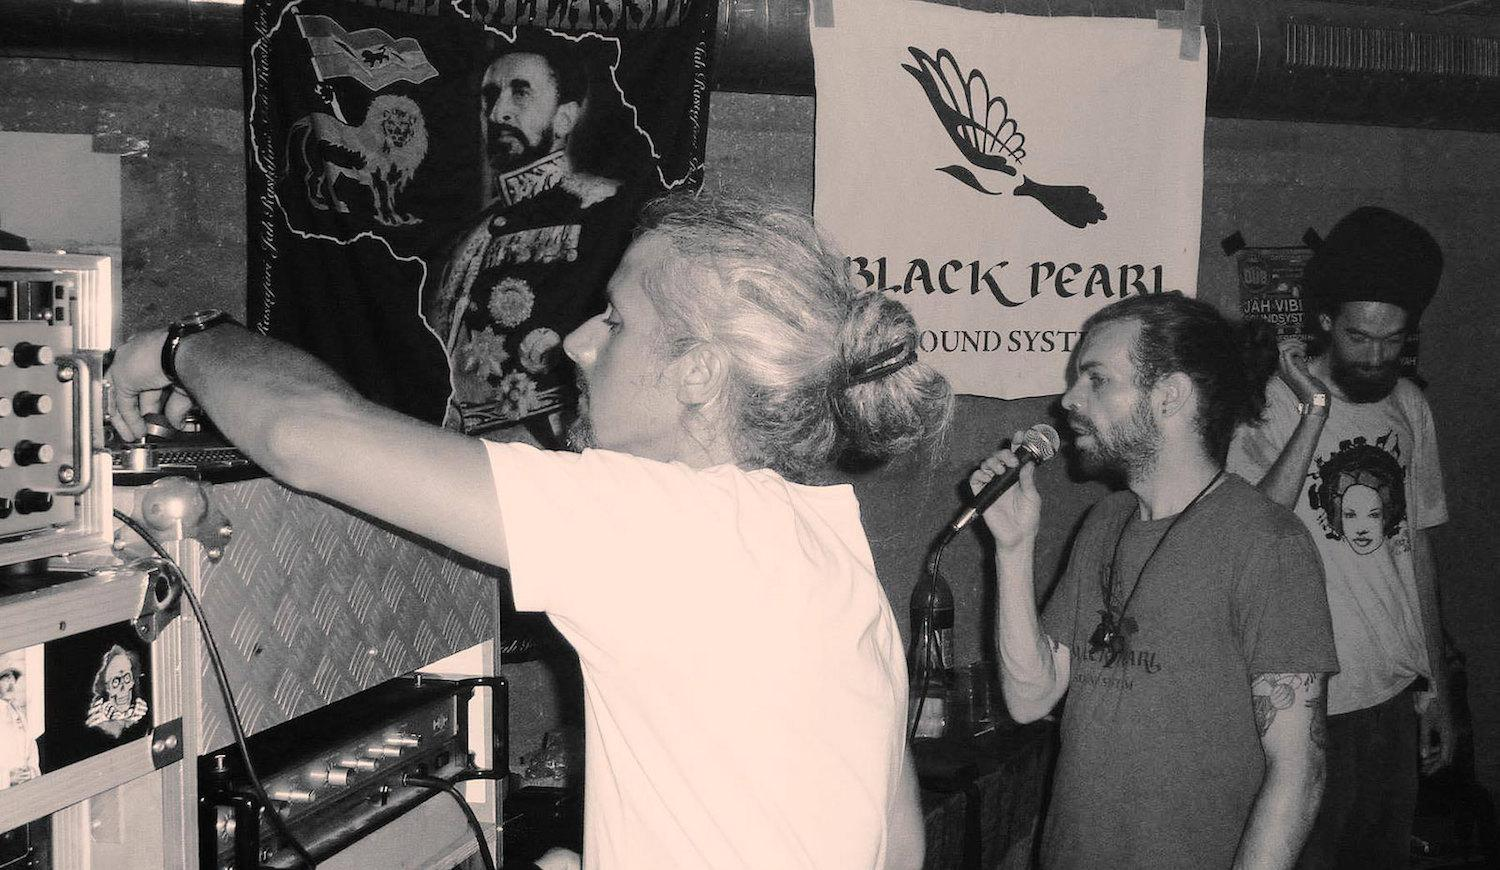 Black Pearl Sound